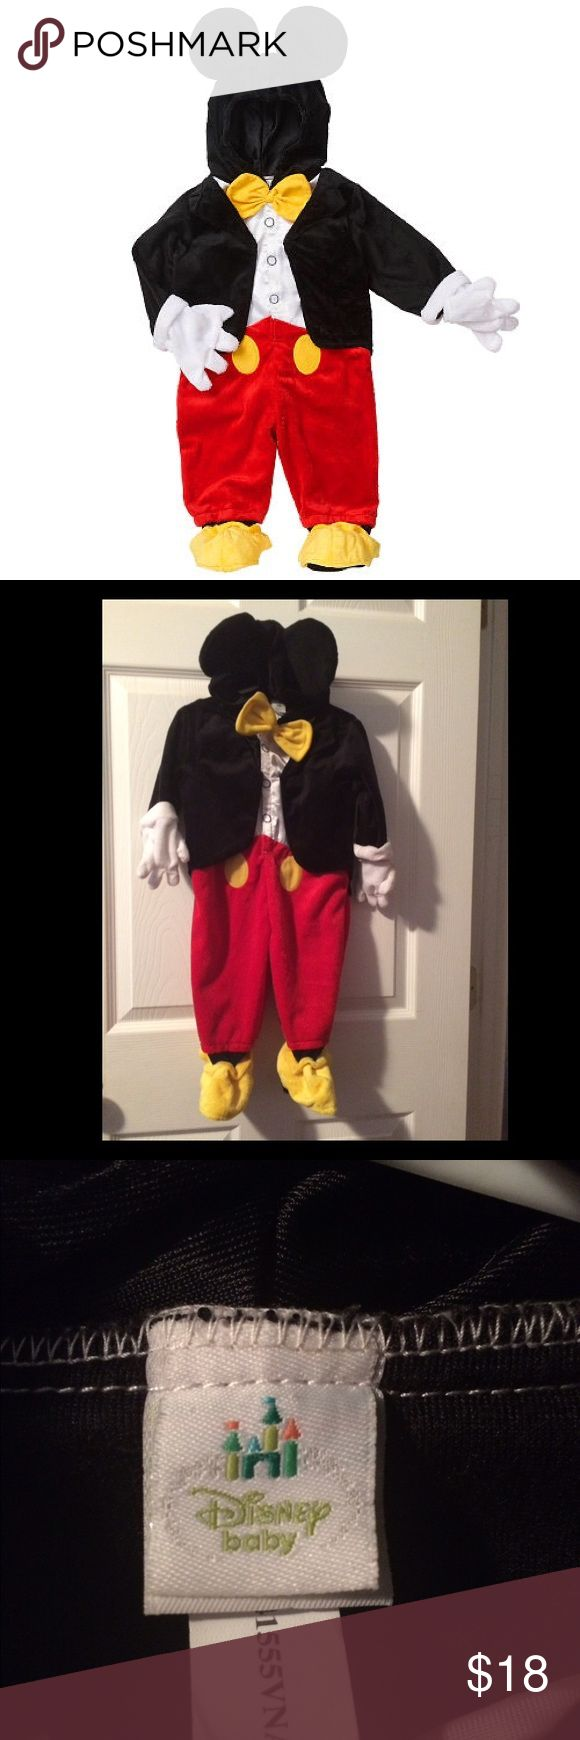 SALE 🐣 Mickey Mouse Costume 6-9 Months Disney Mickey Mouse Costume 6-9 Months Disney Baby Runs Big - fit 12 month old Disney Costumes Halloween